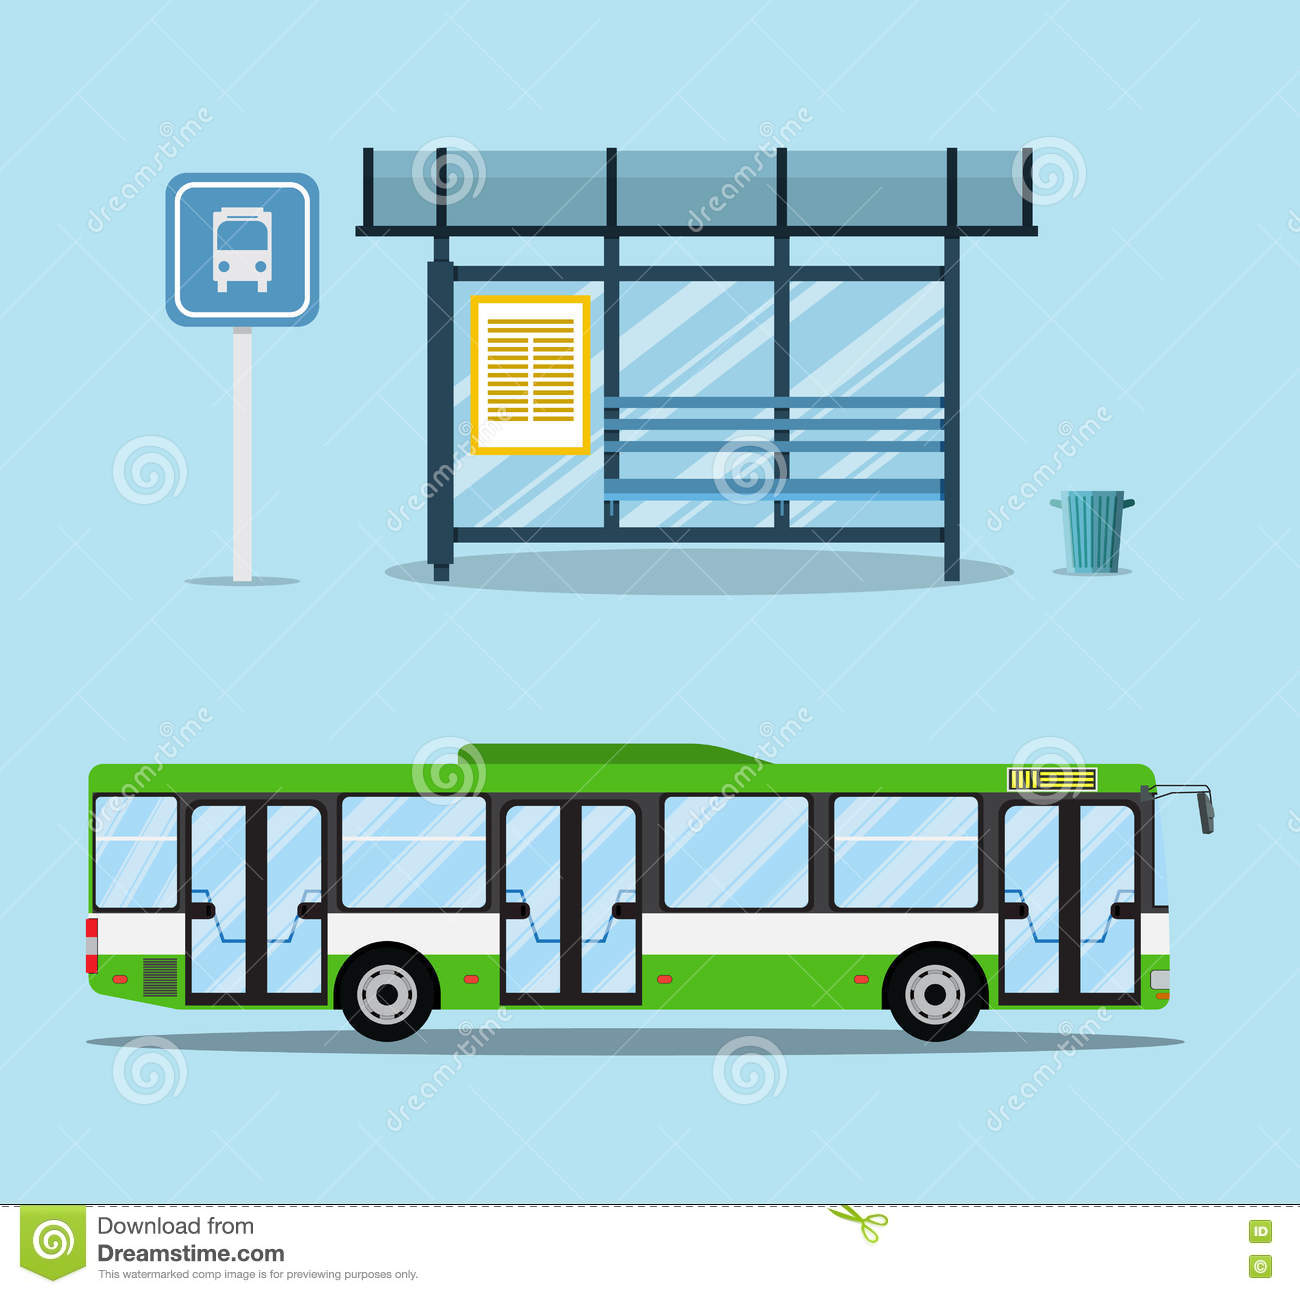 bus stop with seats and payment kiosk  front and side view